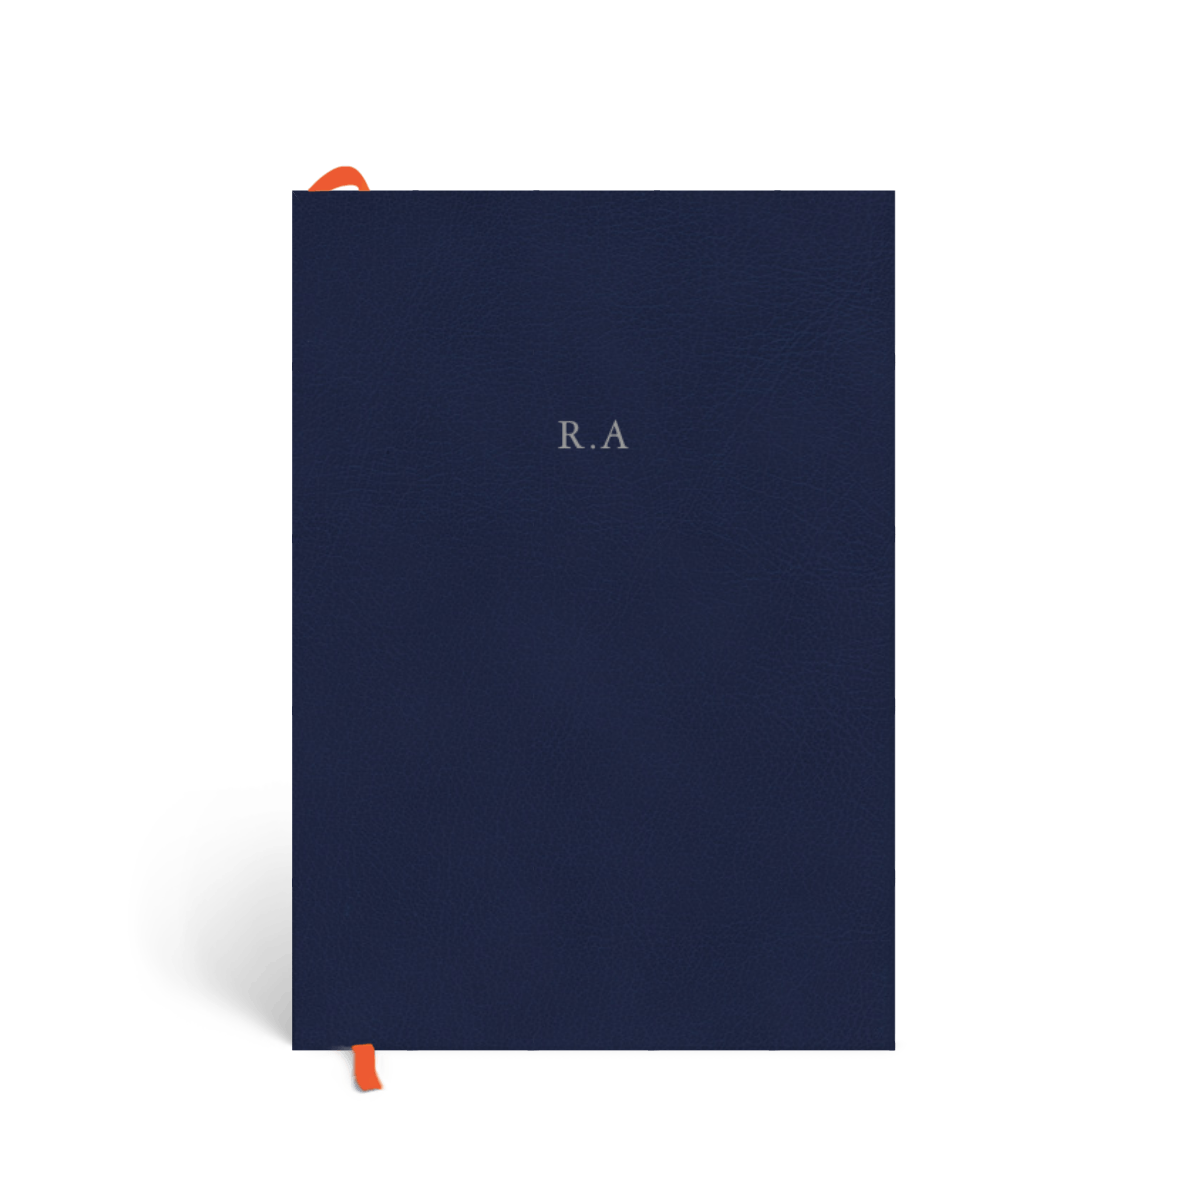 Https%3a%2f%2fwww.papier.com%2fproduct image%2f95373%2f113%2froyal blue monogram 23879 front 1573495916.png?ixlib=rb 1.1